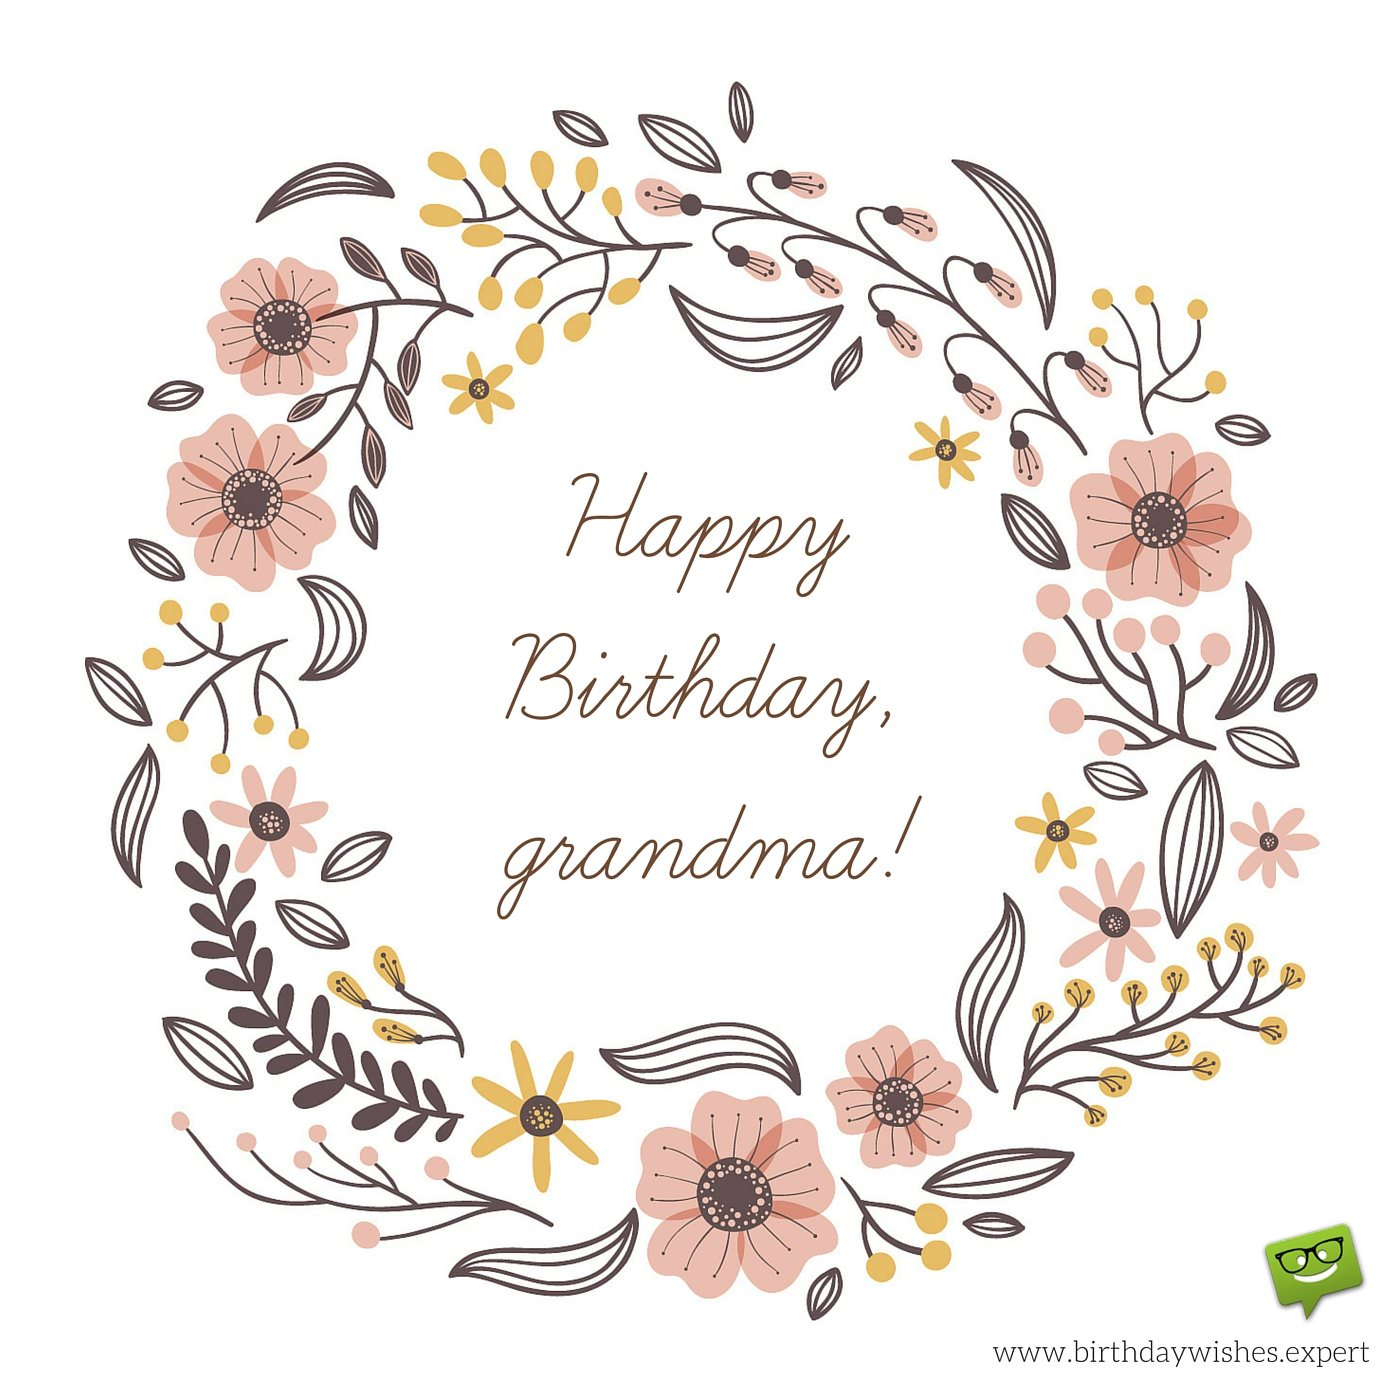 happy birthday grandmother ; Happy-Birthday-Grandma-On-image-with-hand-drawn-flowers